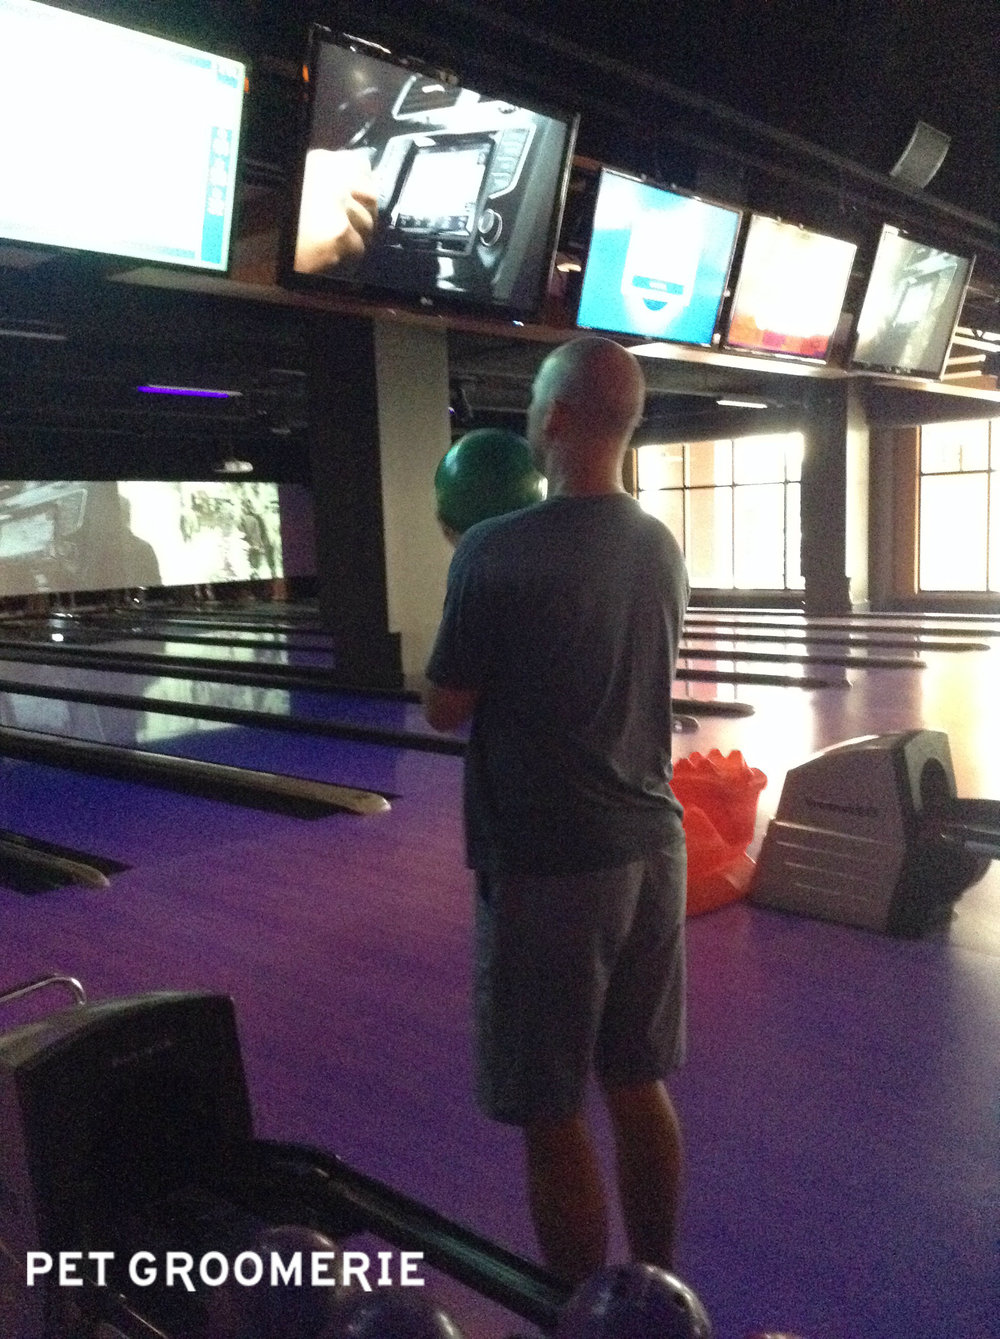 Hey, Tim -- is that your head or a second bowling ball? (Okay, I'll collect my things, I'm out...)